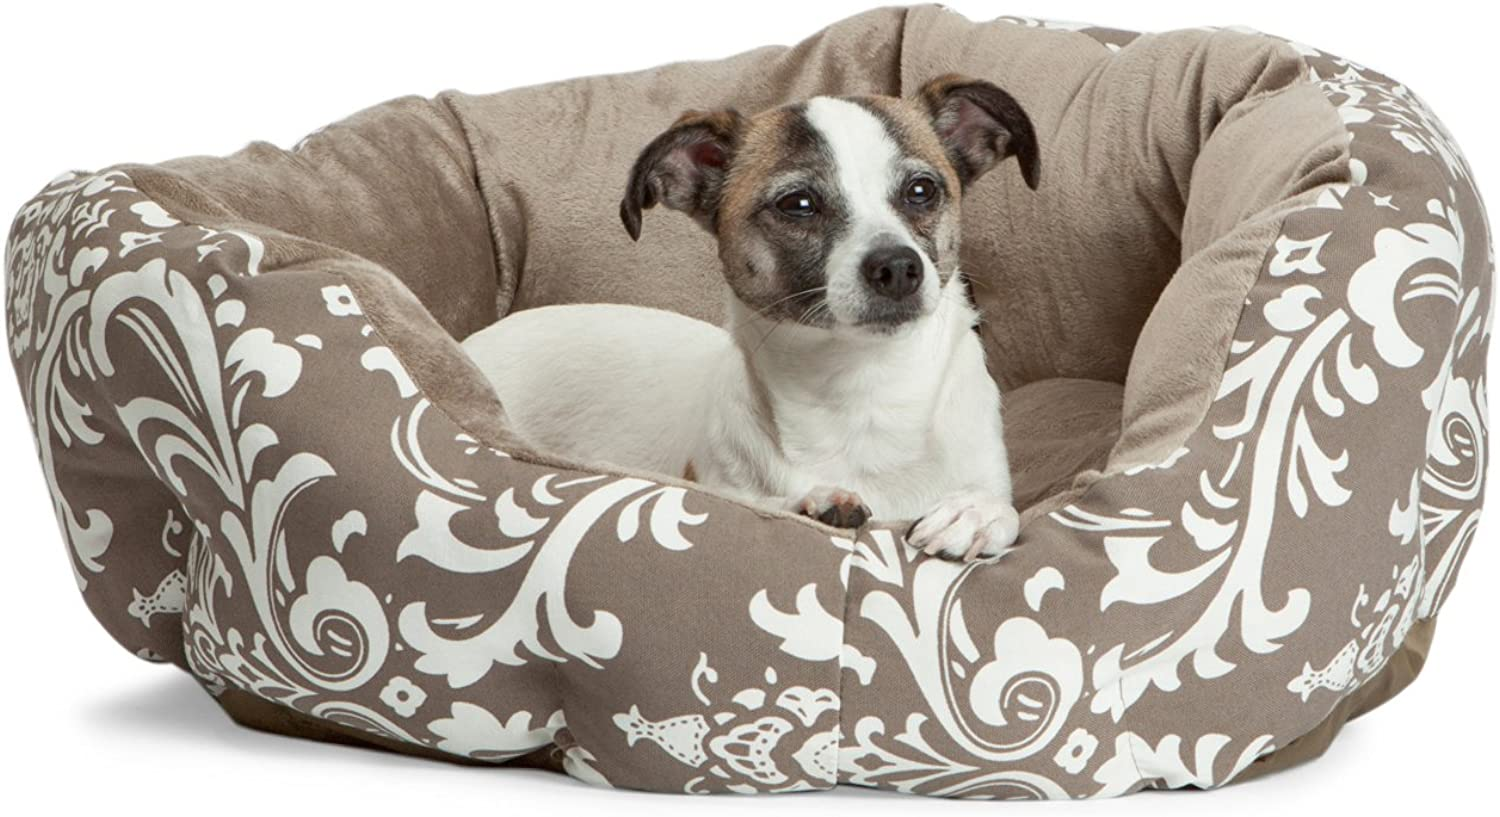 Best Friends by Sheri DCHAMSCOCMED Medium Duchess Cuddler in Amsterdam for Small to Medium ( 30 lbs) Pets, 23  X 23  X 9 , Cocoa